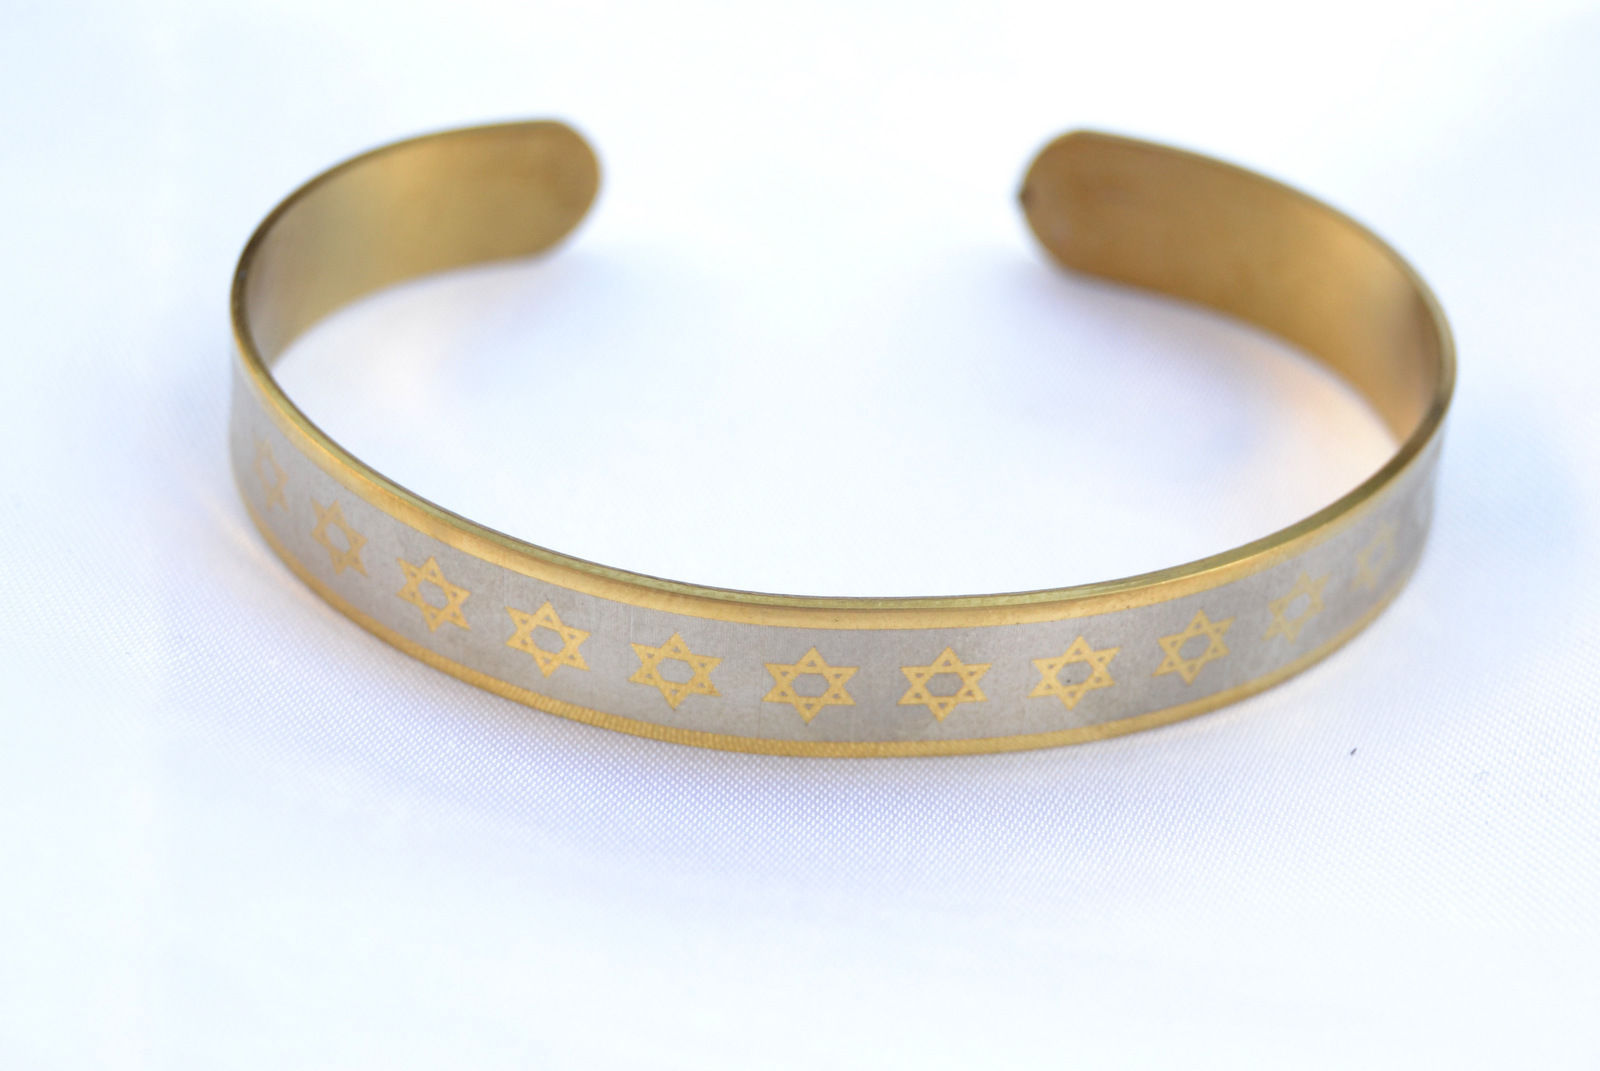 2pc Bracelet Star of David Jewish Wristband Stainless-Silver/gold Color israel